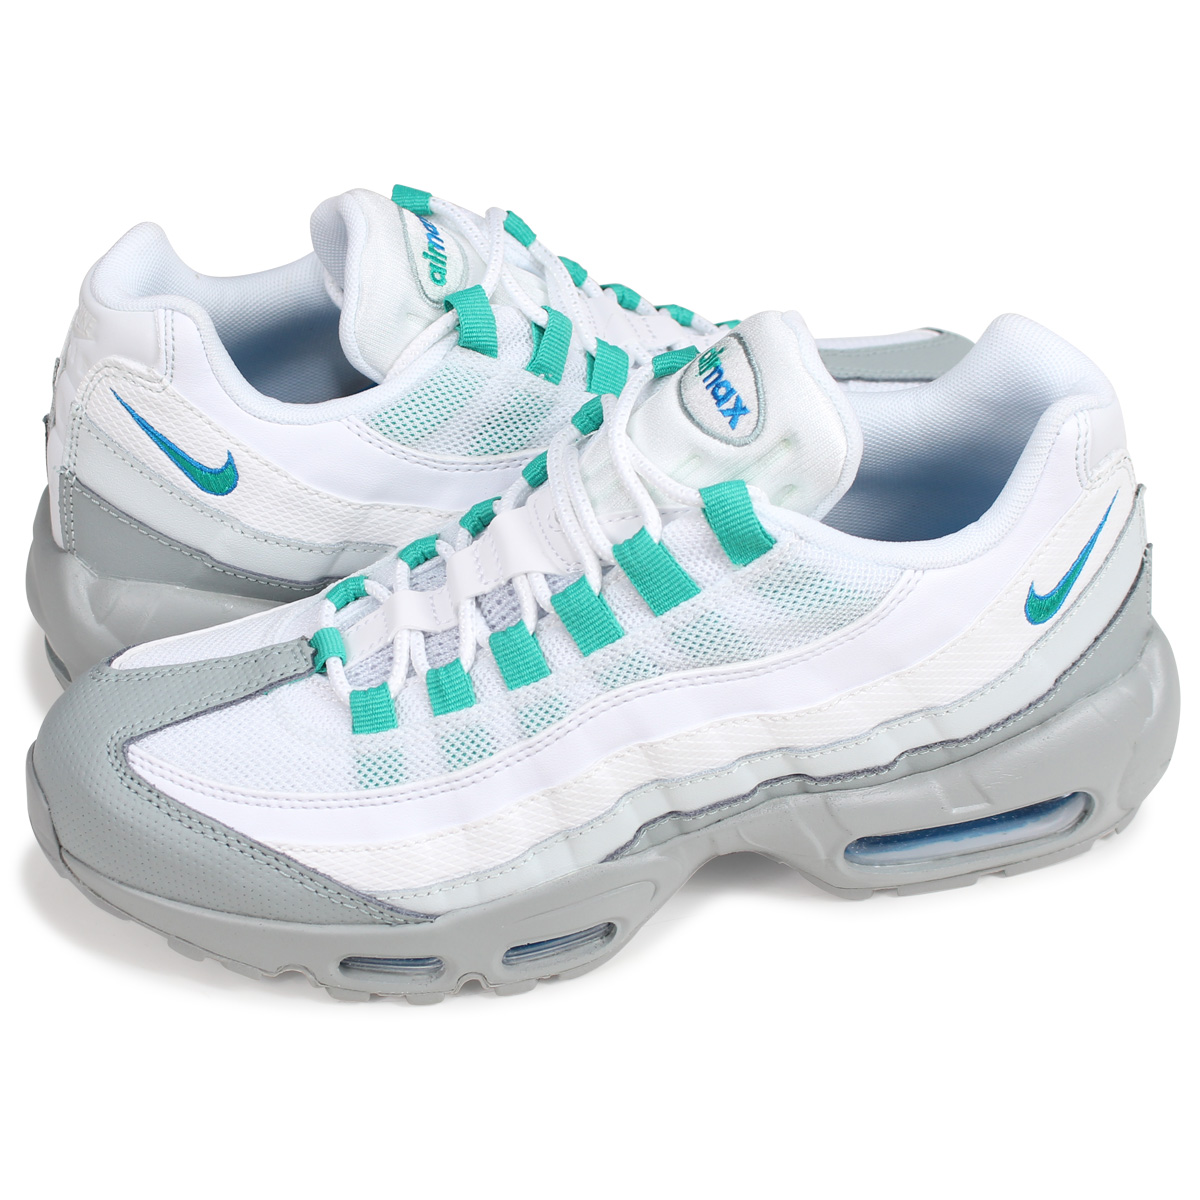 the best attitude ef74b 92ea7 NIKE AIR MAX 95 ESSENTIAL Kie Ney AMAX 95 essential sneakers men  749,766-032 light ...